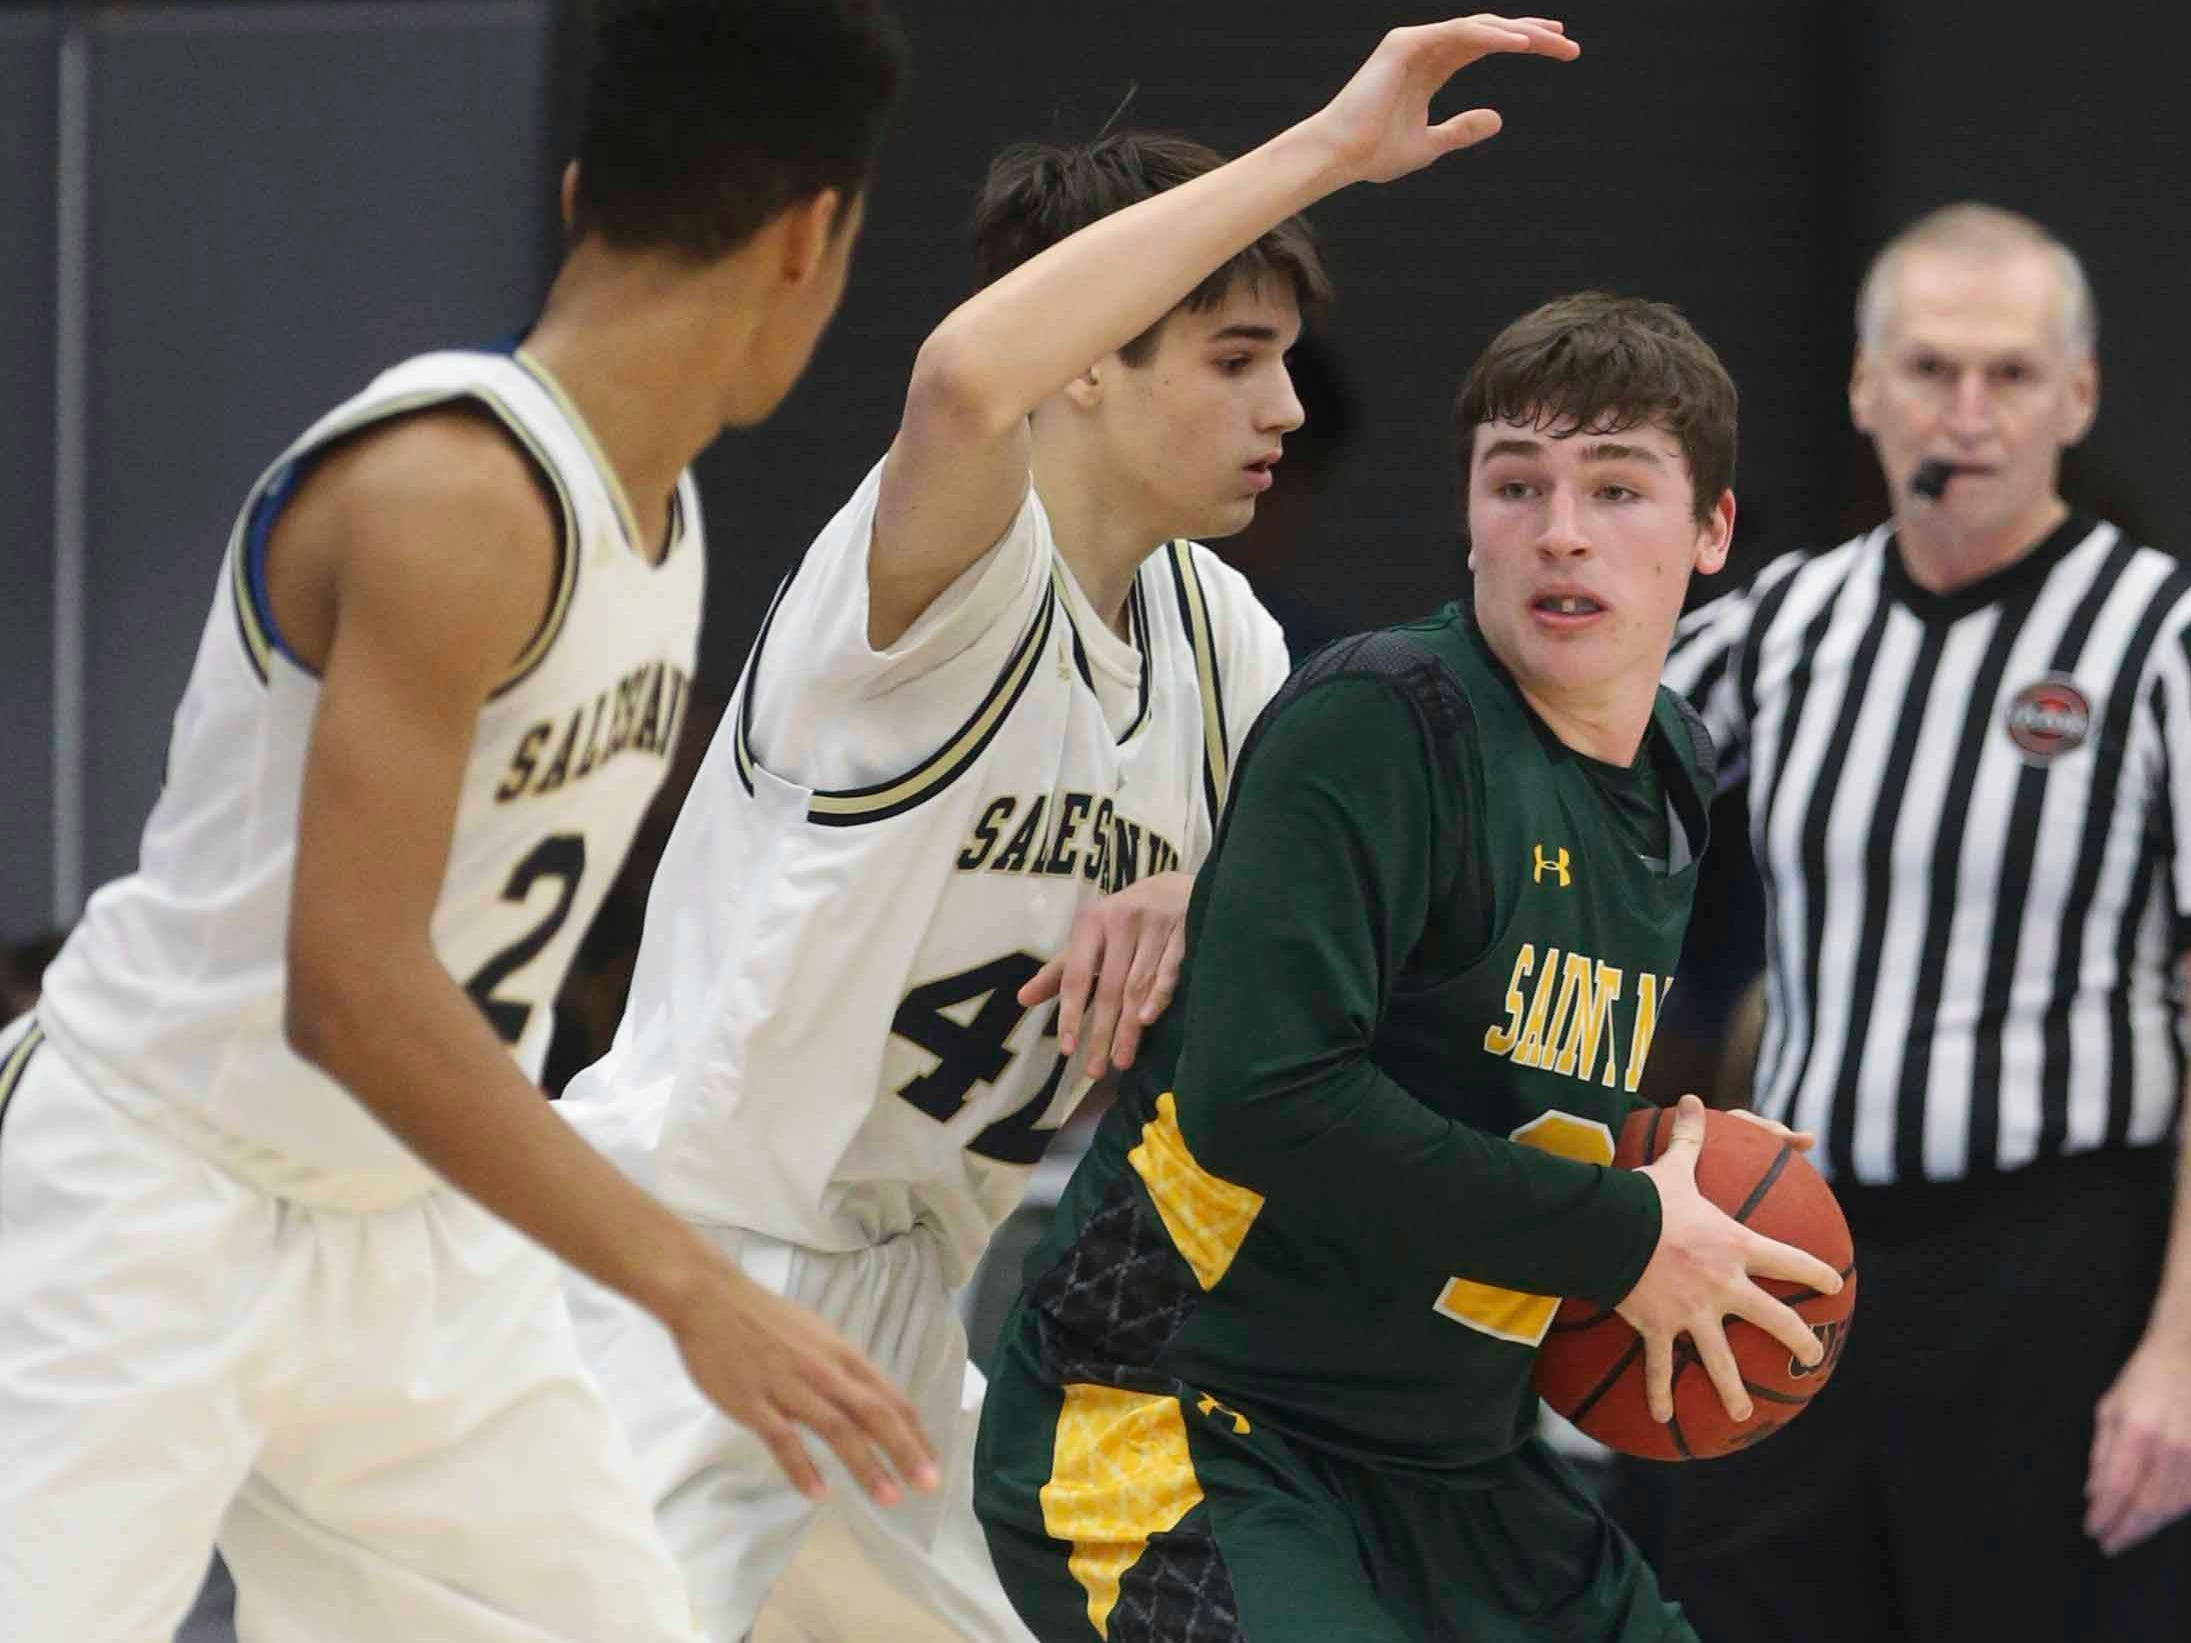 Salesianum's Ethan Hinds (left) and Dan Springman defend against St. Mark's Eric Ludman in the SL24 Memorial Basketball Classic at the 76ers Fieldhouse in Wilmington Friday.